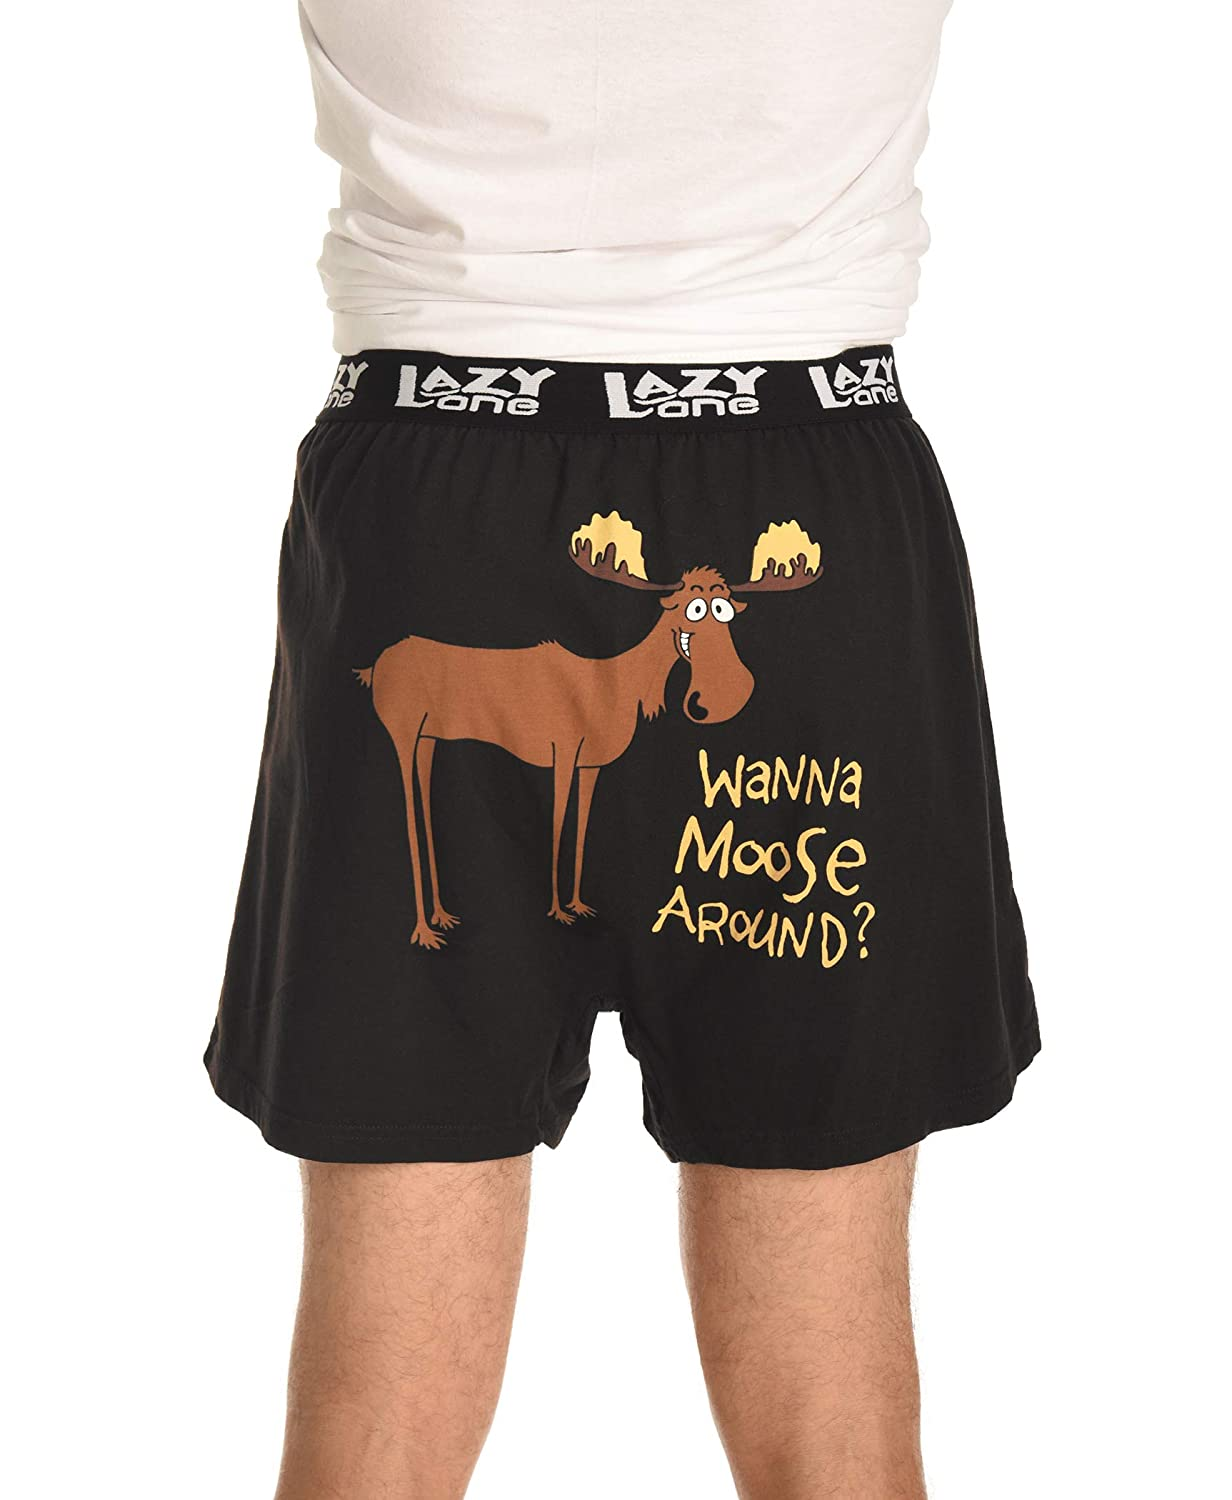 Soft Comical Boxers for Men by LazyOne Large Funny Mens Boxers Wanna Moose Around